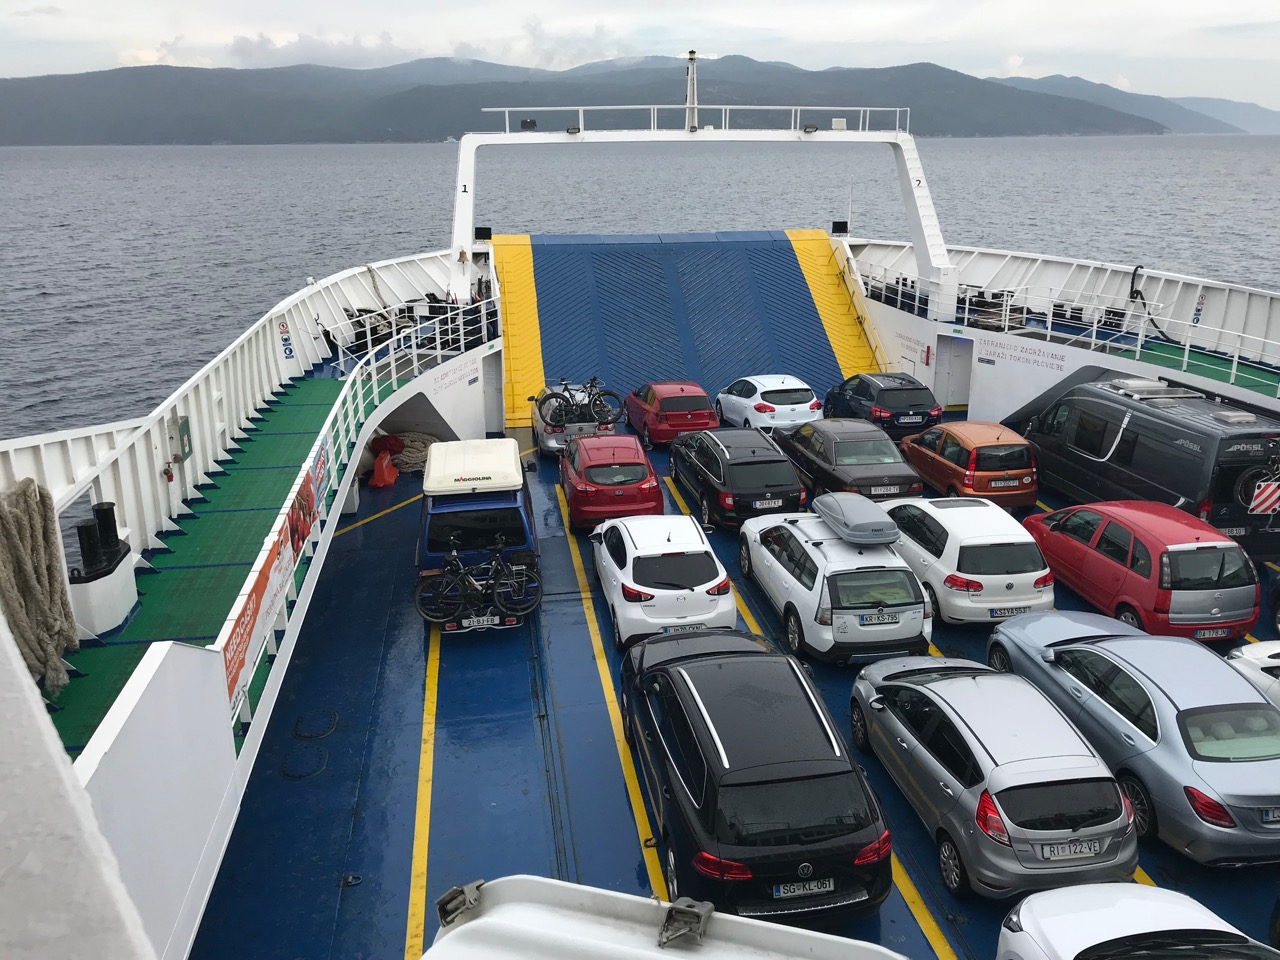 Ferry to Cres